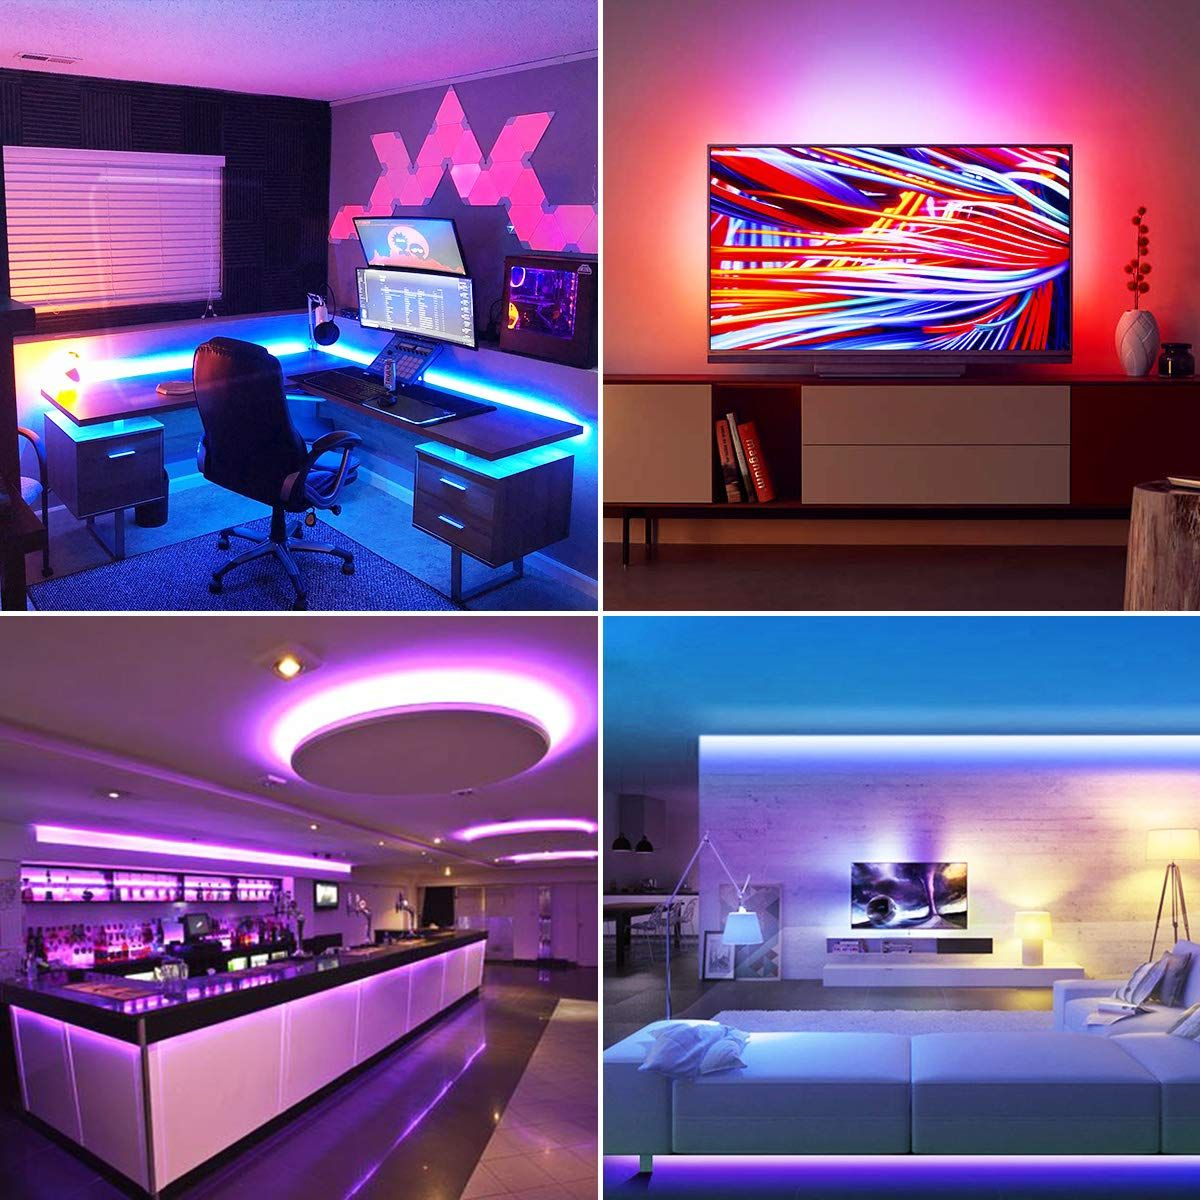 Led Strip Lights 16 4ft Dimmable Waterproof Ip65 5050 Rgb Color Changing Rope Lights Smart Stri Led Strip Lighting Strip Lighting Color Changing Rope Lights